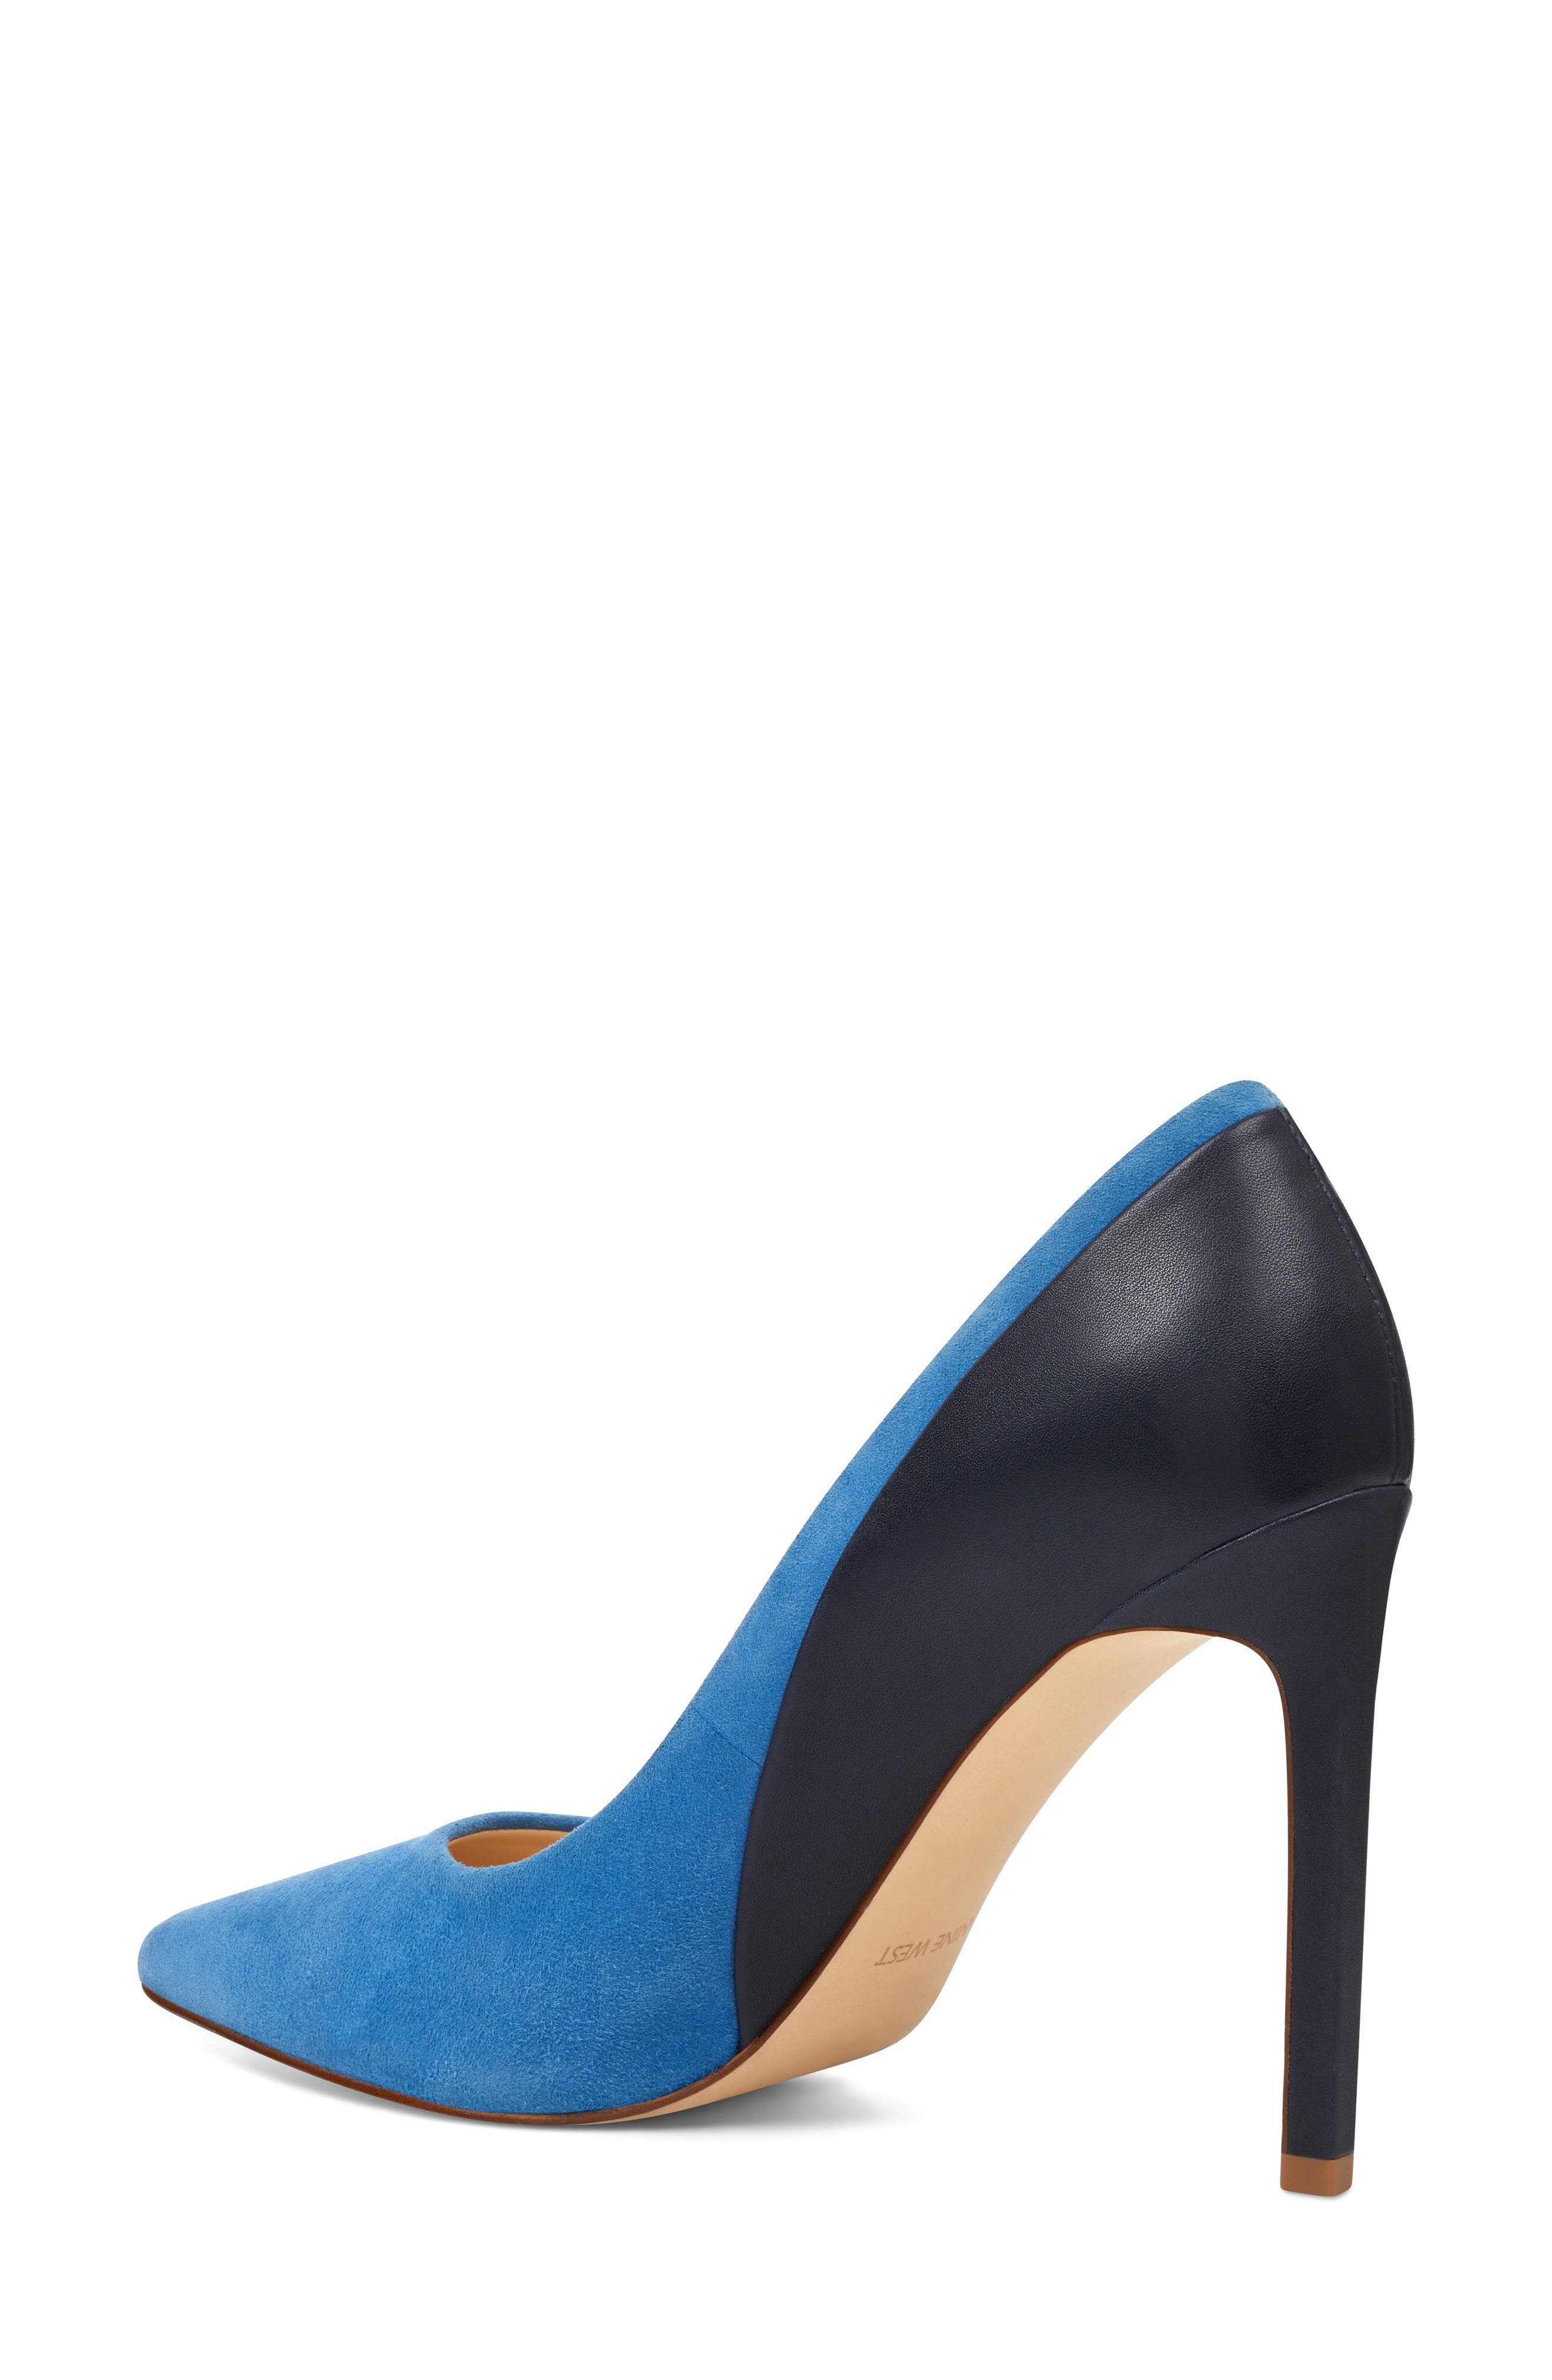 Taymra Pointy Toe Pump,                             Alternate thumbnail 2, color,                             Blue/ Navy Suede